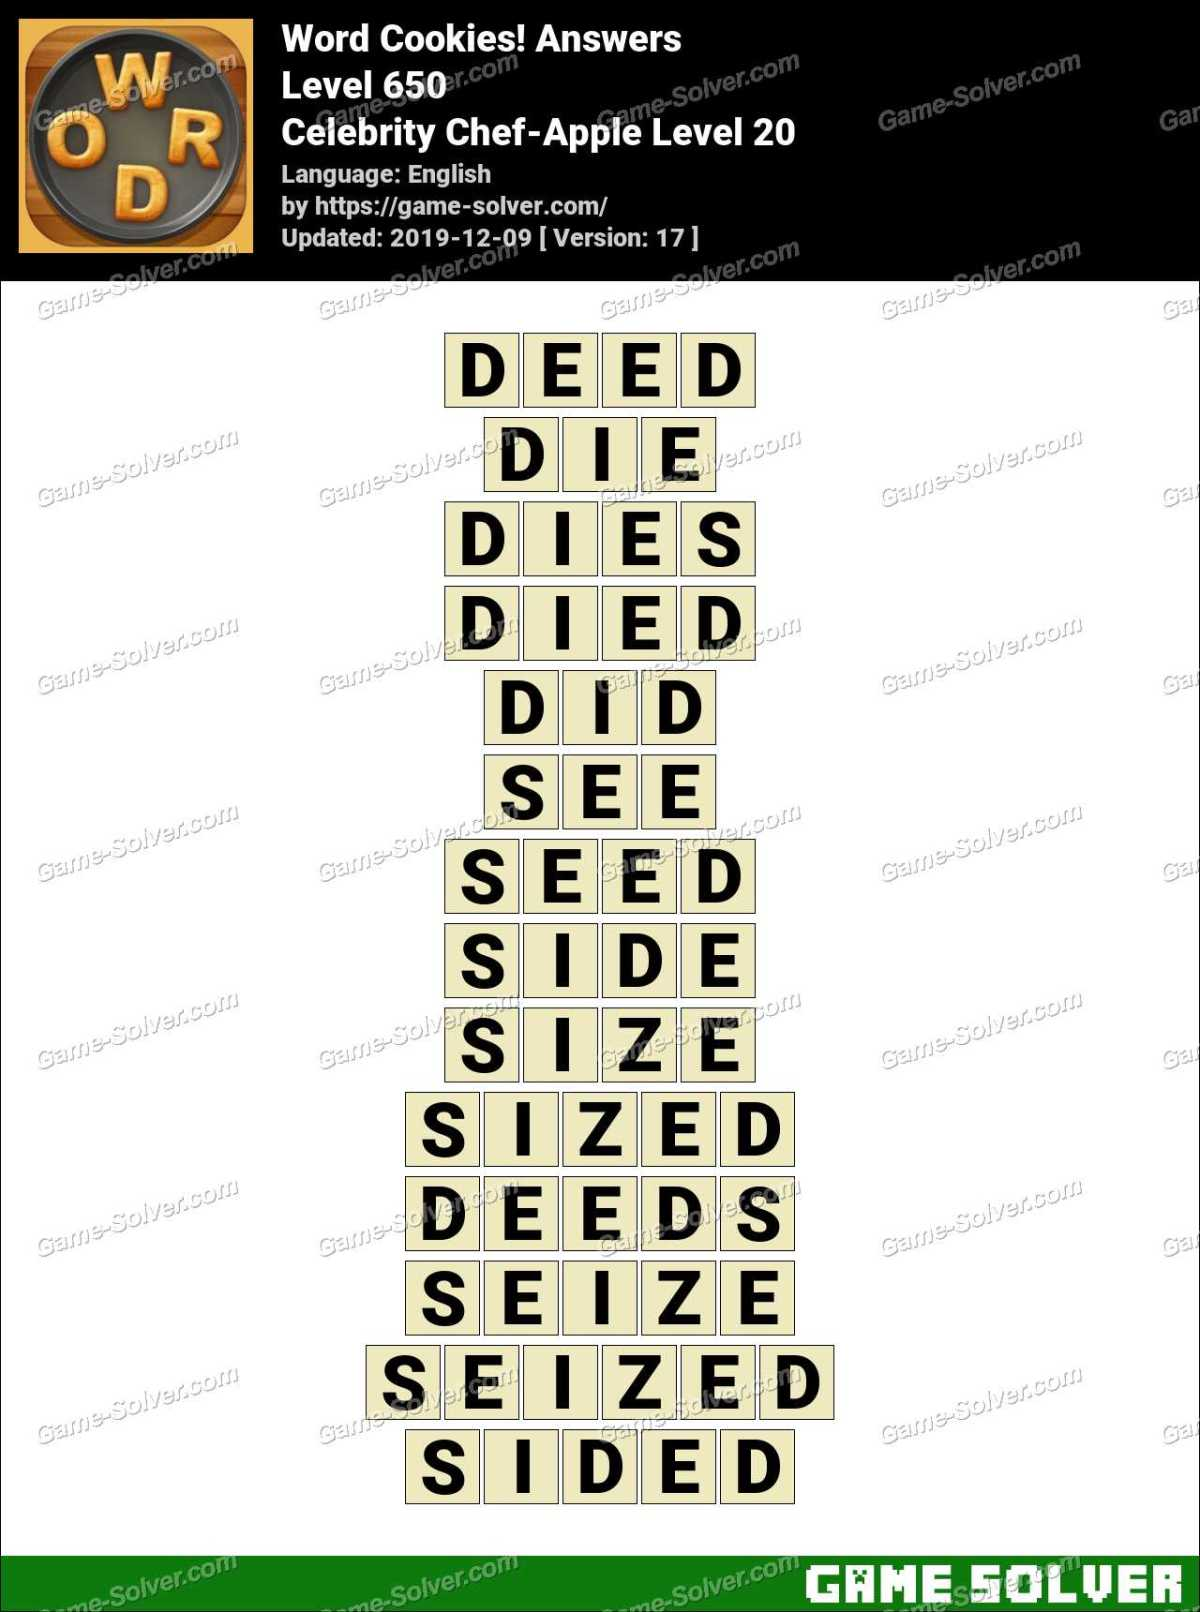 Word Cookies Celebrity Chef-Apple Level 20 Answers